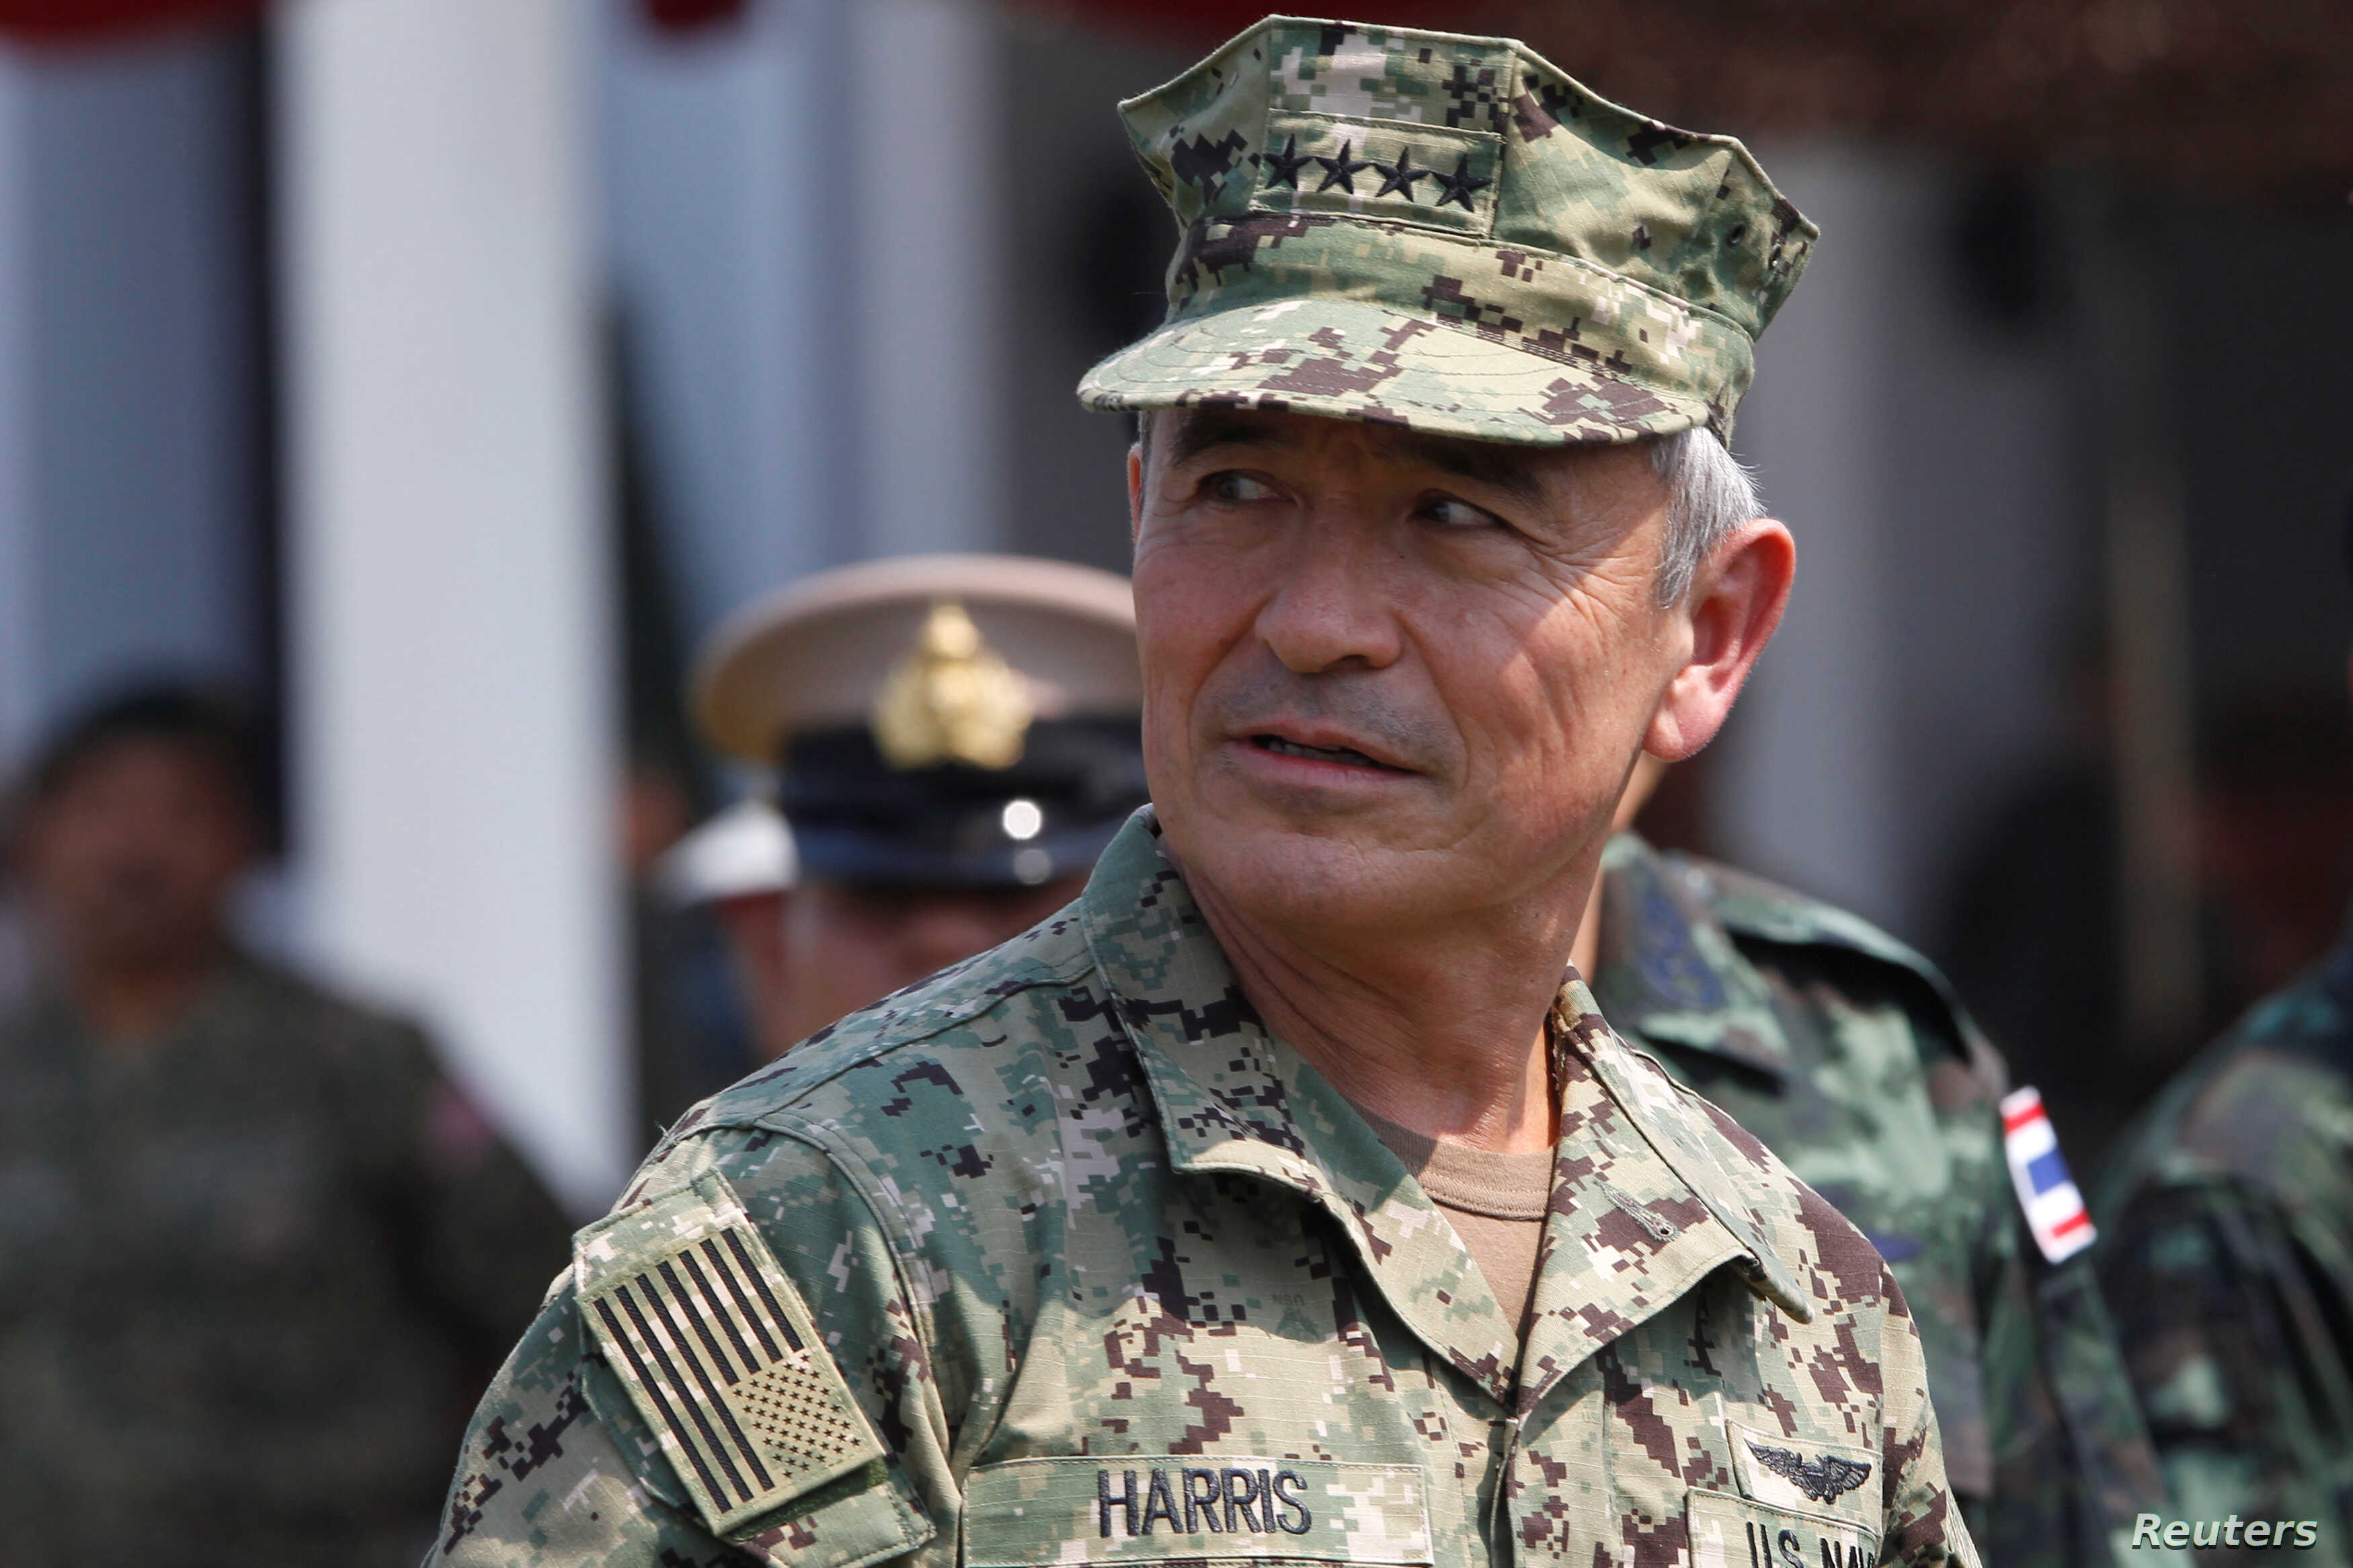 FILE - U.S. Admiral Harry Harris, commander of the Pacific Command attends the opening ceremony of the Asia-Pacific multilateral military exercise known as Cobra Gold, at Sattahip Royal Thai Marine Corps Base in Chonburi, Thailand, Feb. 14, 2017.